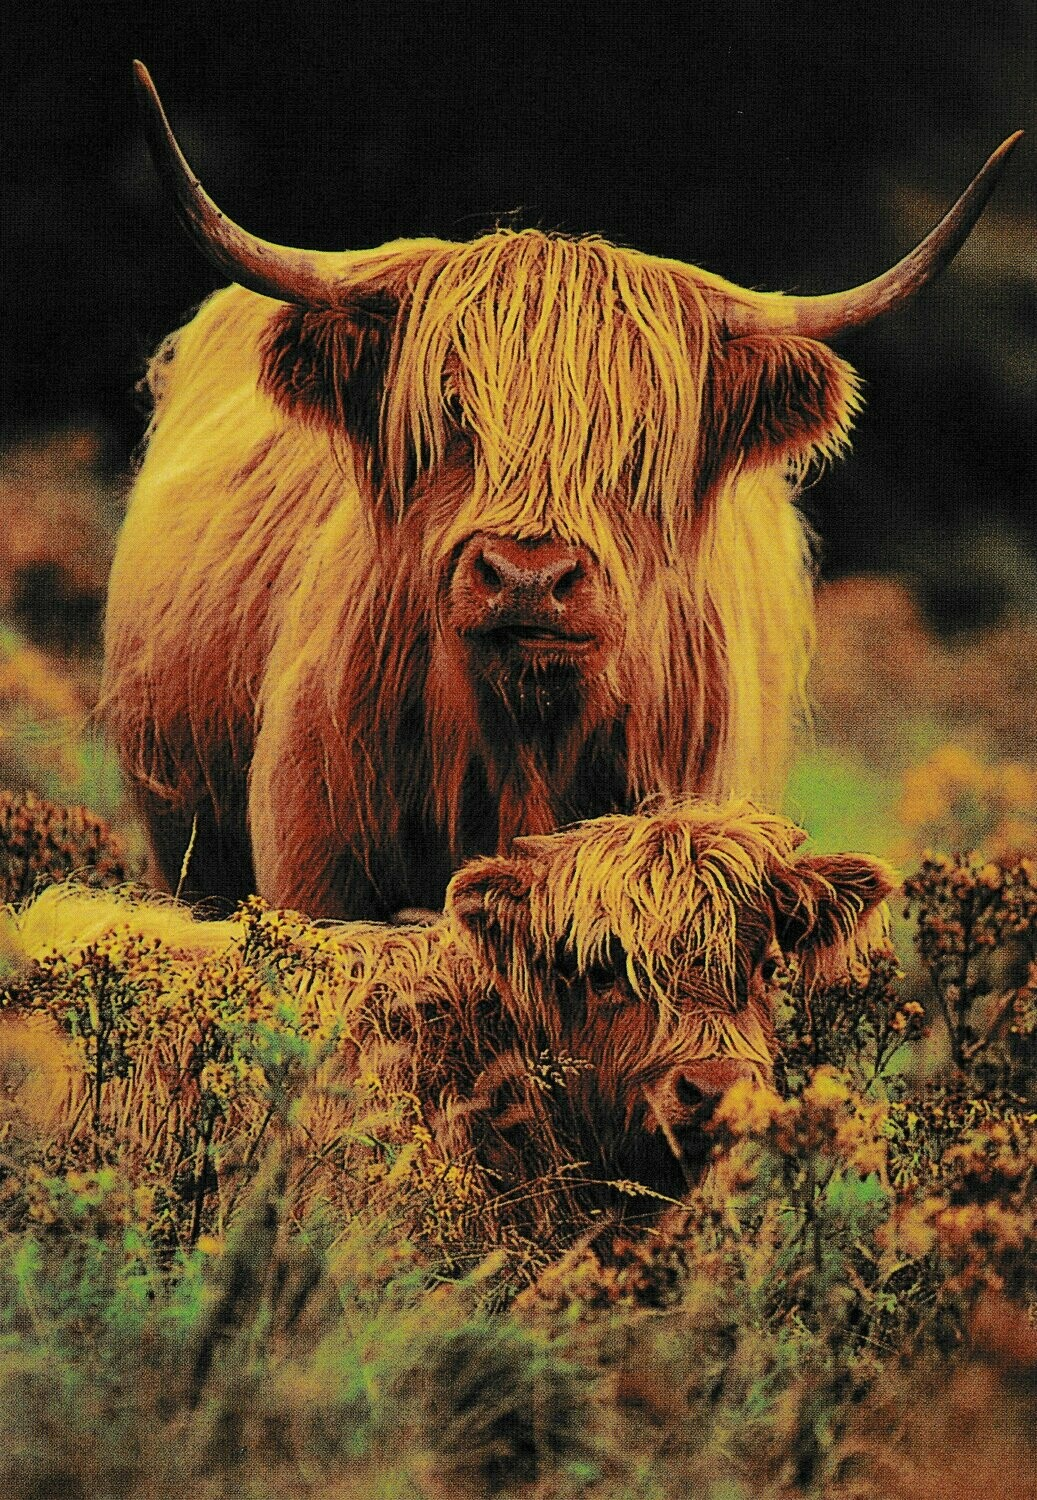 Highland Cows - Full Drill Diamond Painting - Specially ordered for you. Delivery is approximately 4 - 6 weeks.